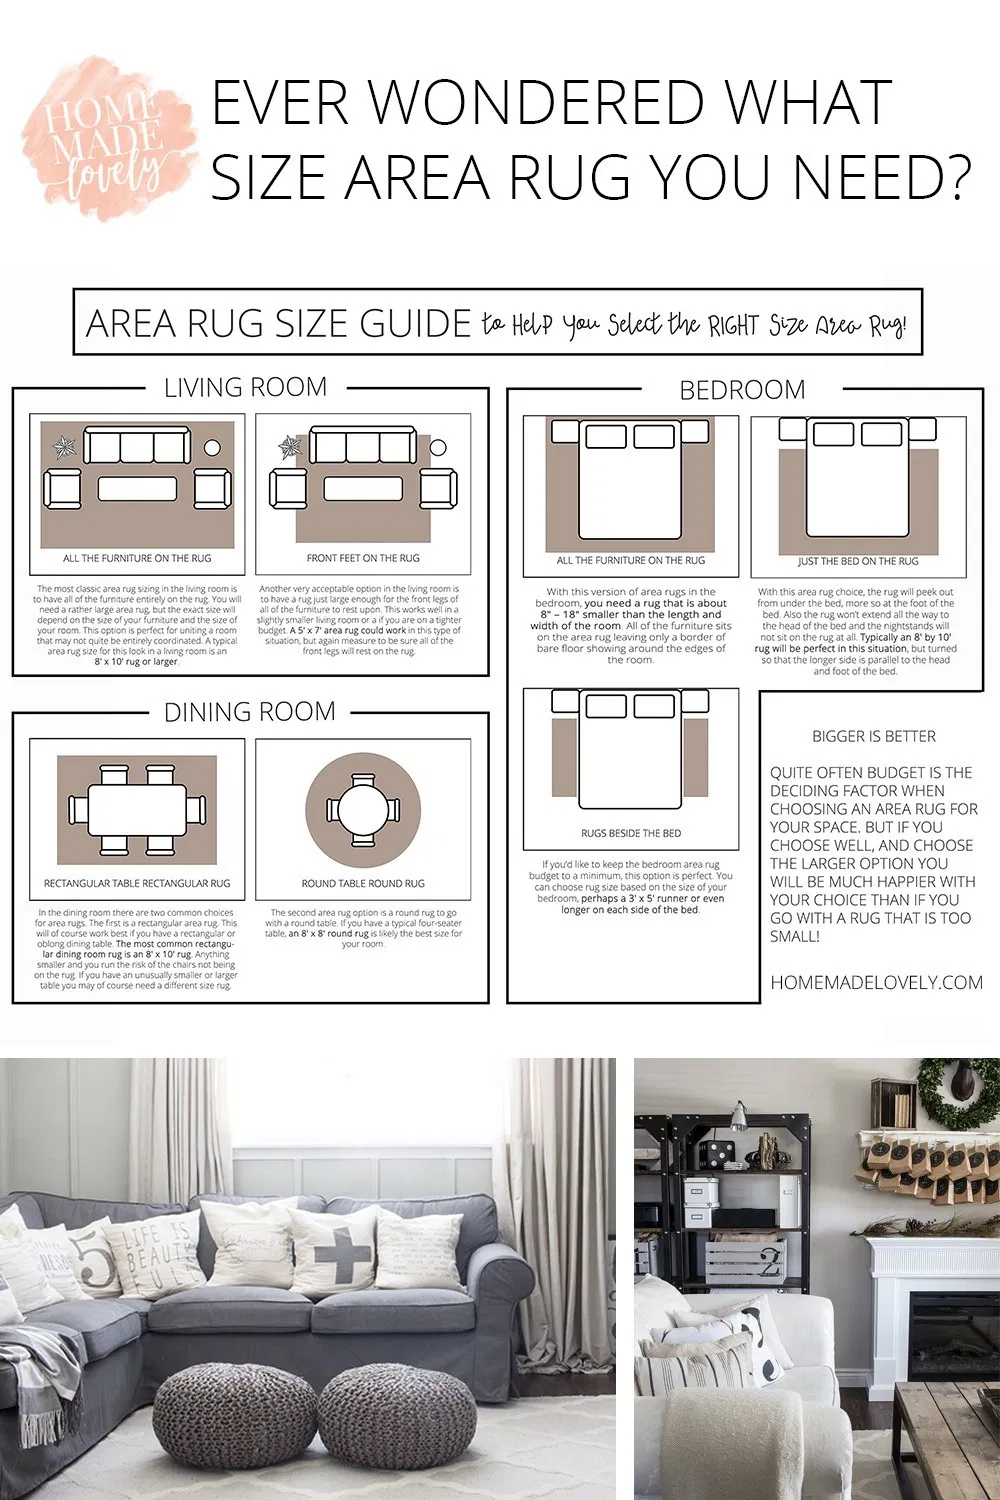 Area Rug Size Guide To Help You Select The Right Size Area Rug Rug Size Guide Living Room Living Room Rug Size Rugs In Living Room